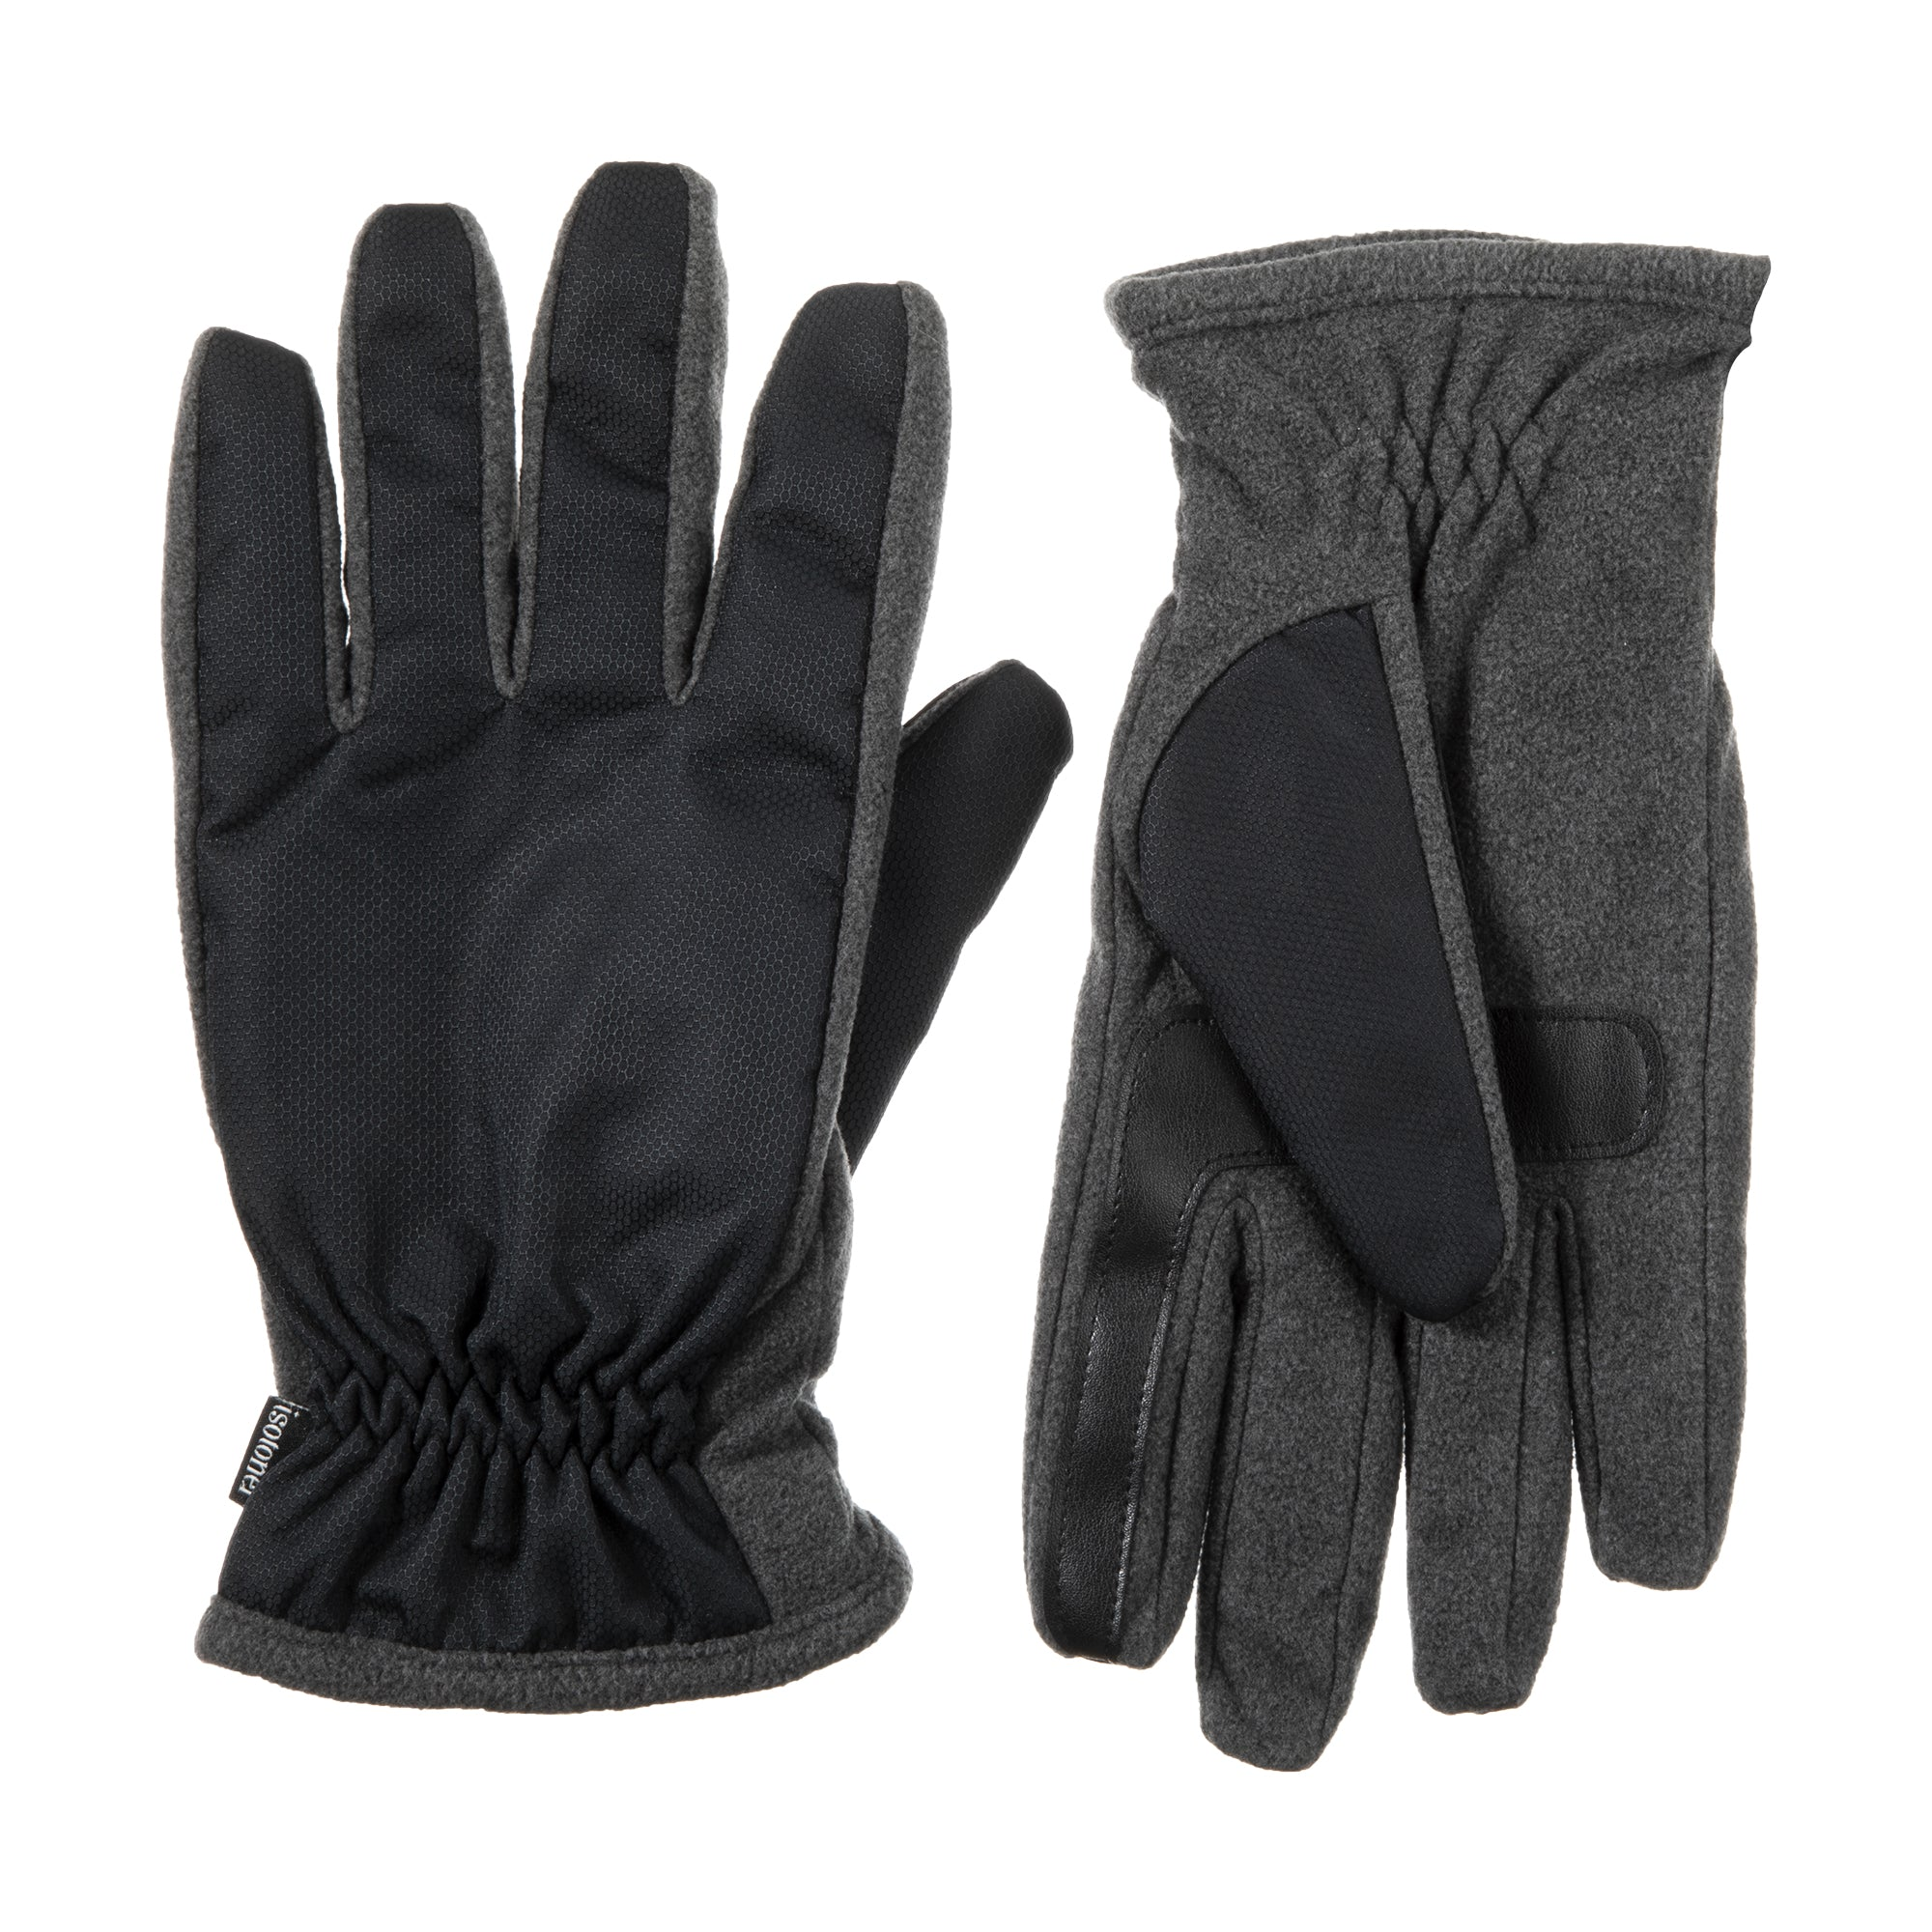 Men's Nylon & Fleece Gloves with Gathered Wrist Dark Charcoal Heathered (Grey) Front and Back